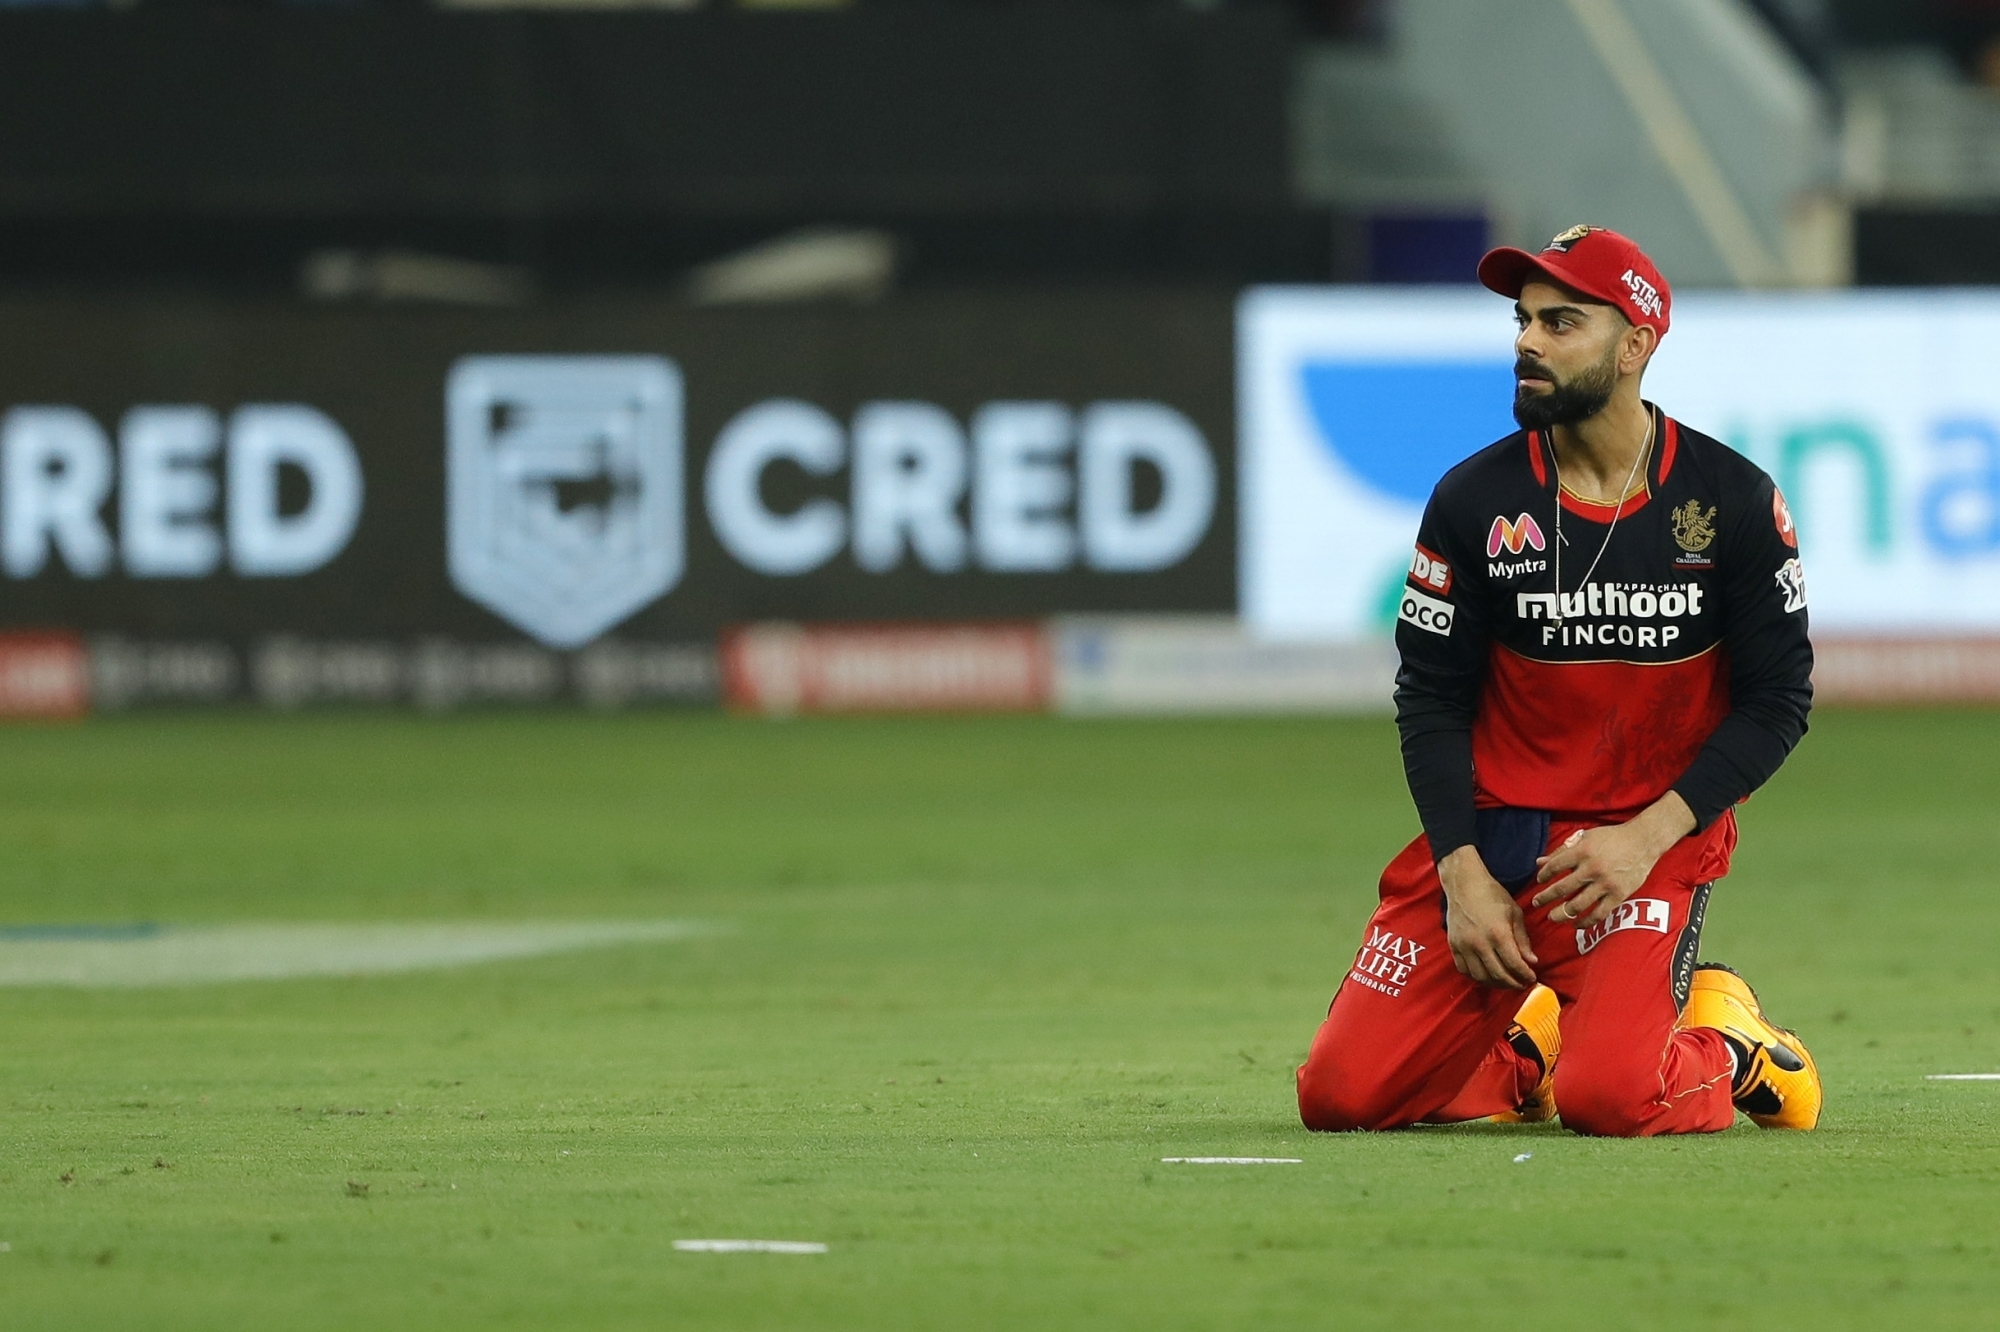 Kohli will remember the loss to KXIP earlier in the season | BCCI/IPL